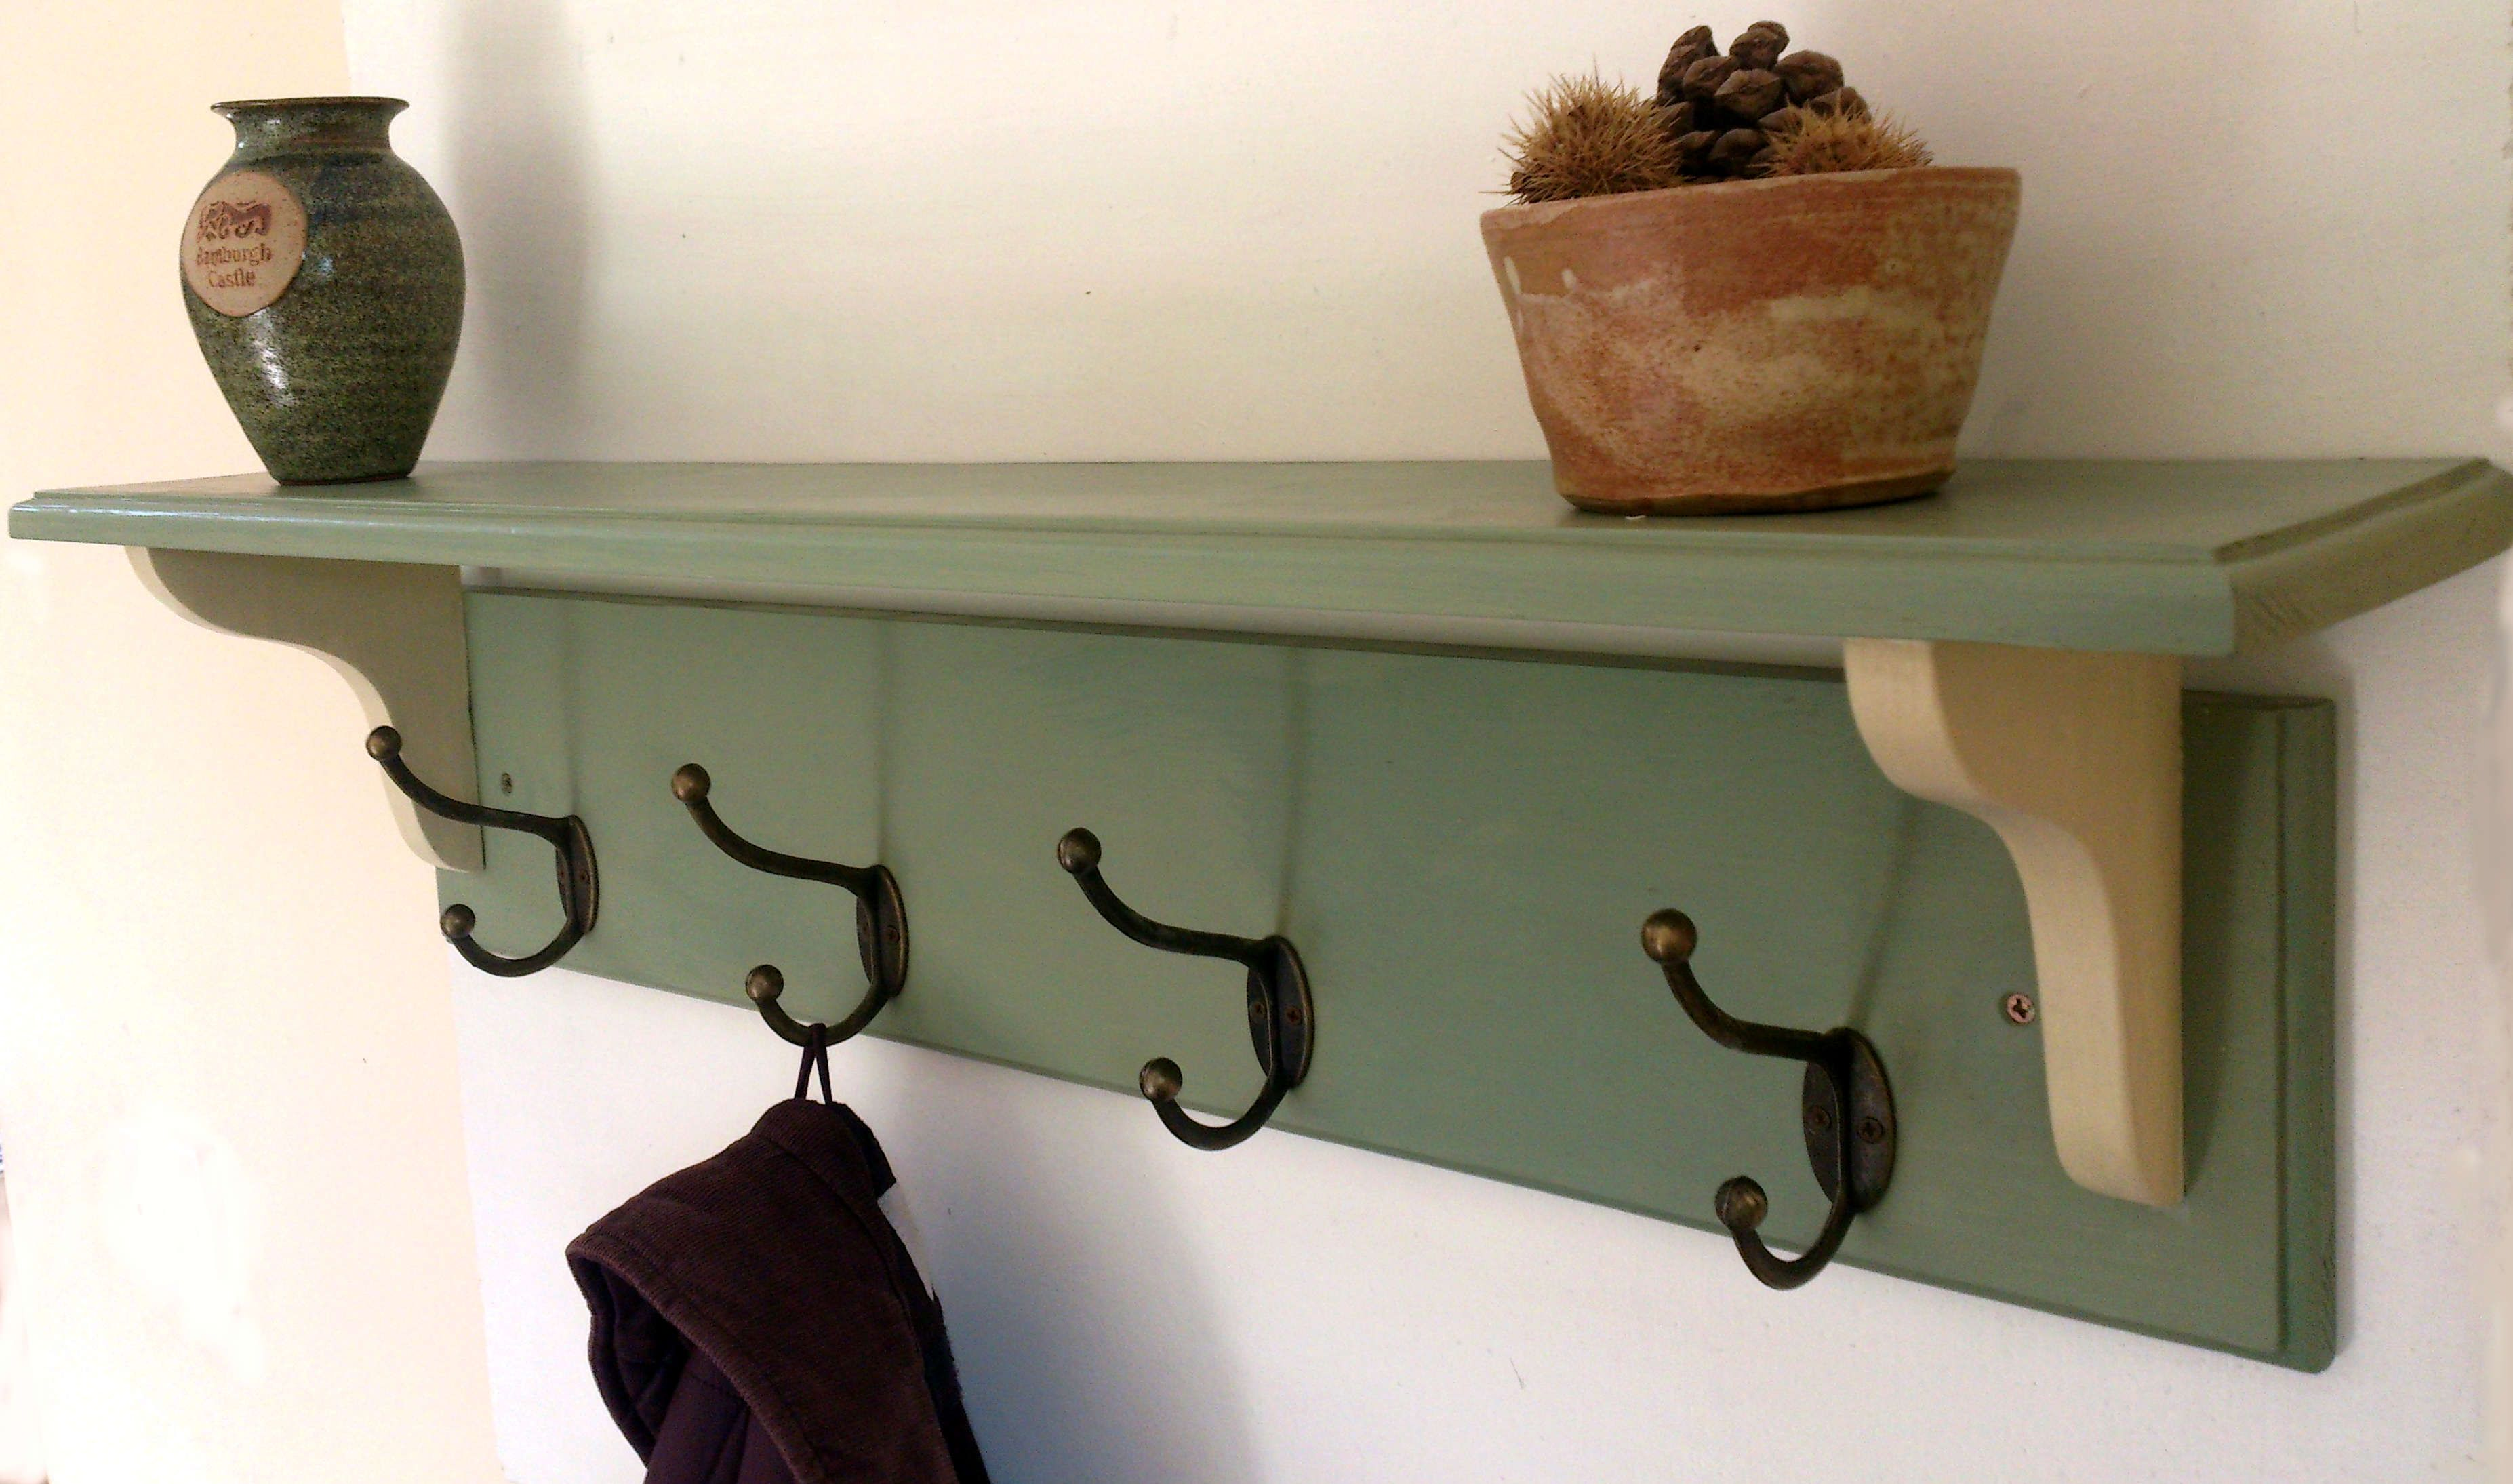 Hallway Wooden Coat Rack With Shelf Solid Wood Vintage Rustic